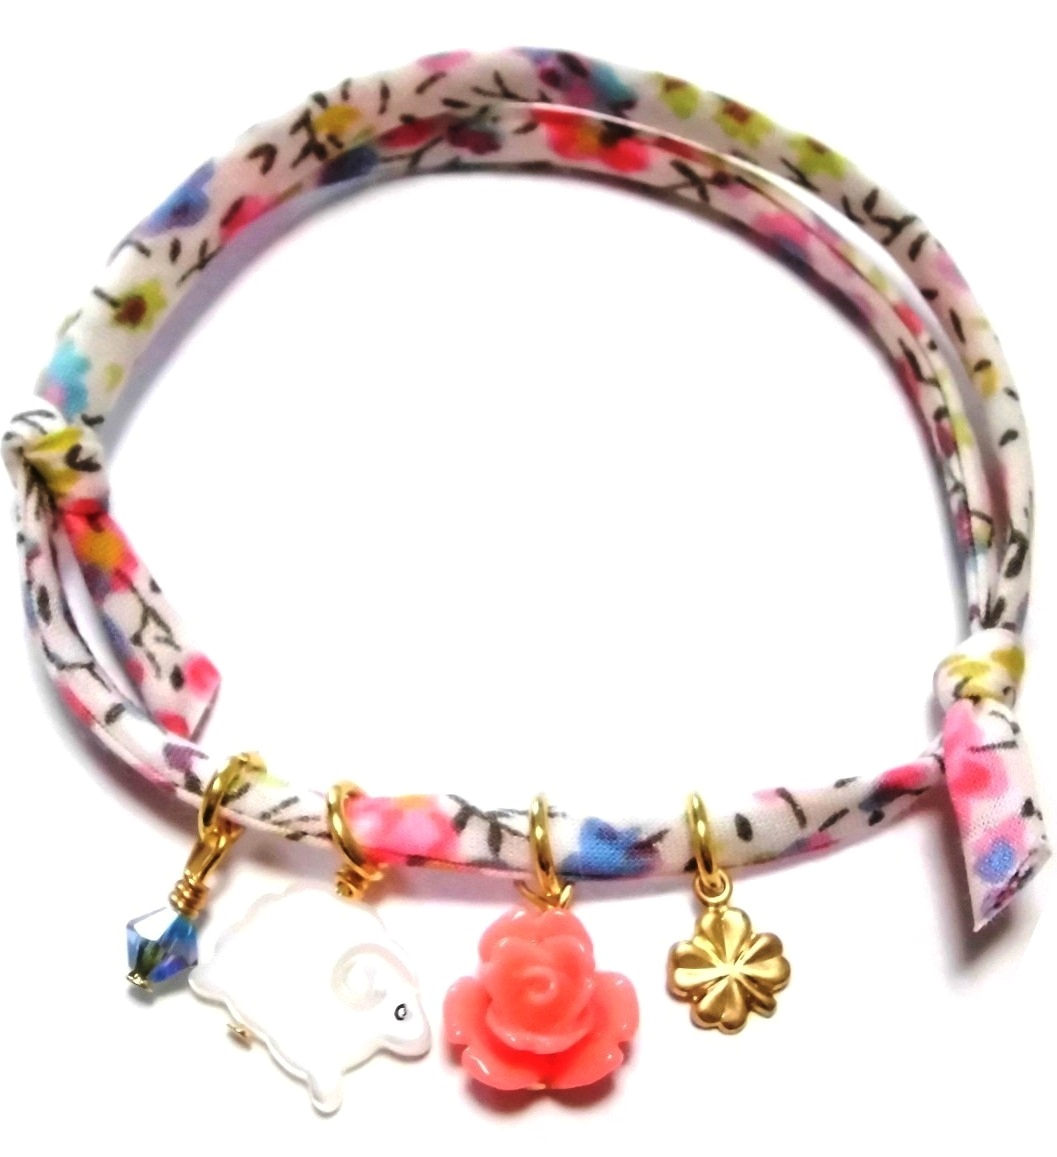 sheep and flower Liberty print bracelet (2)